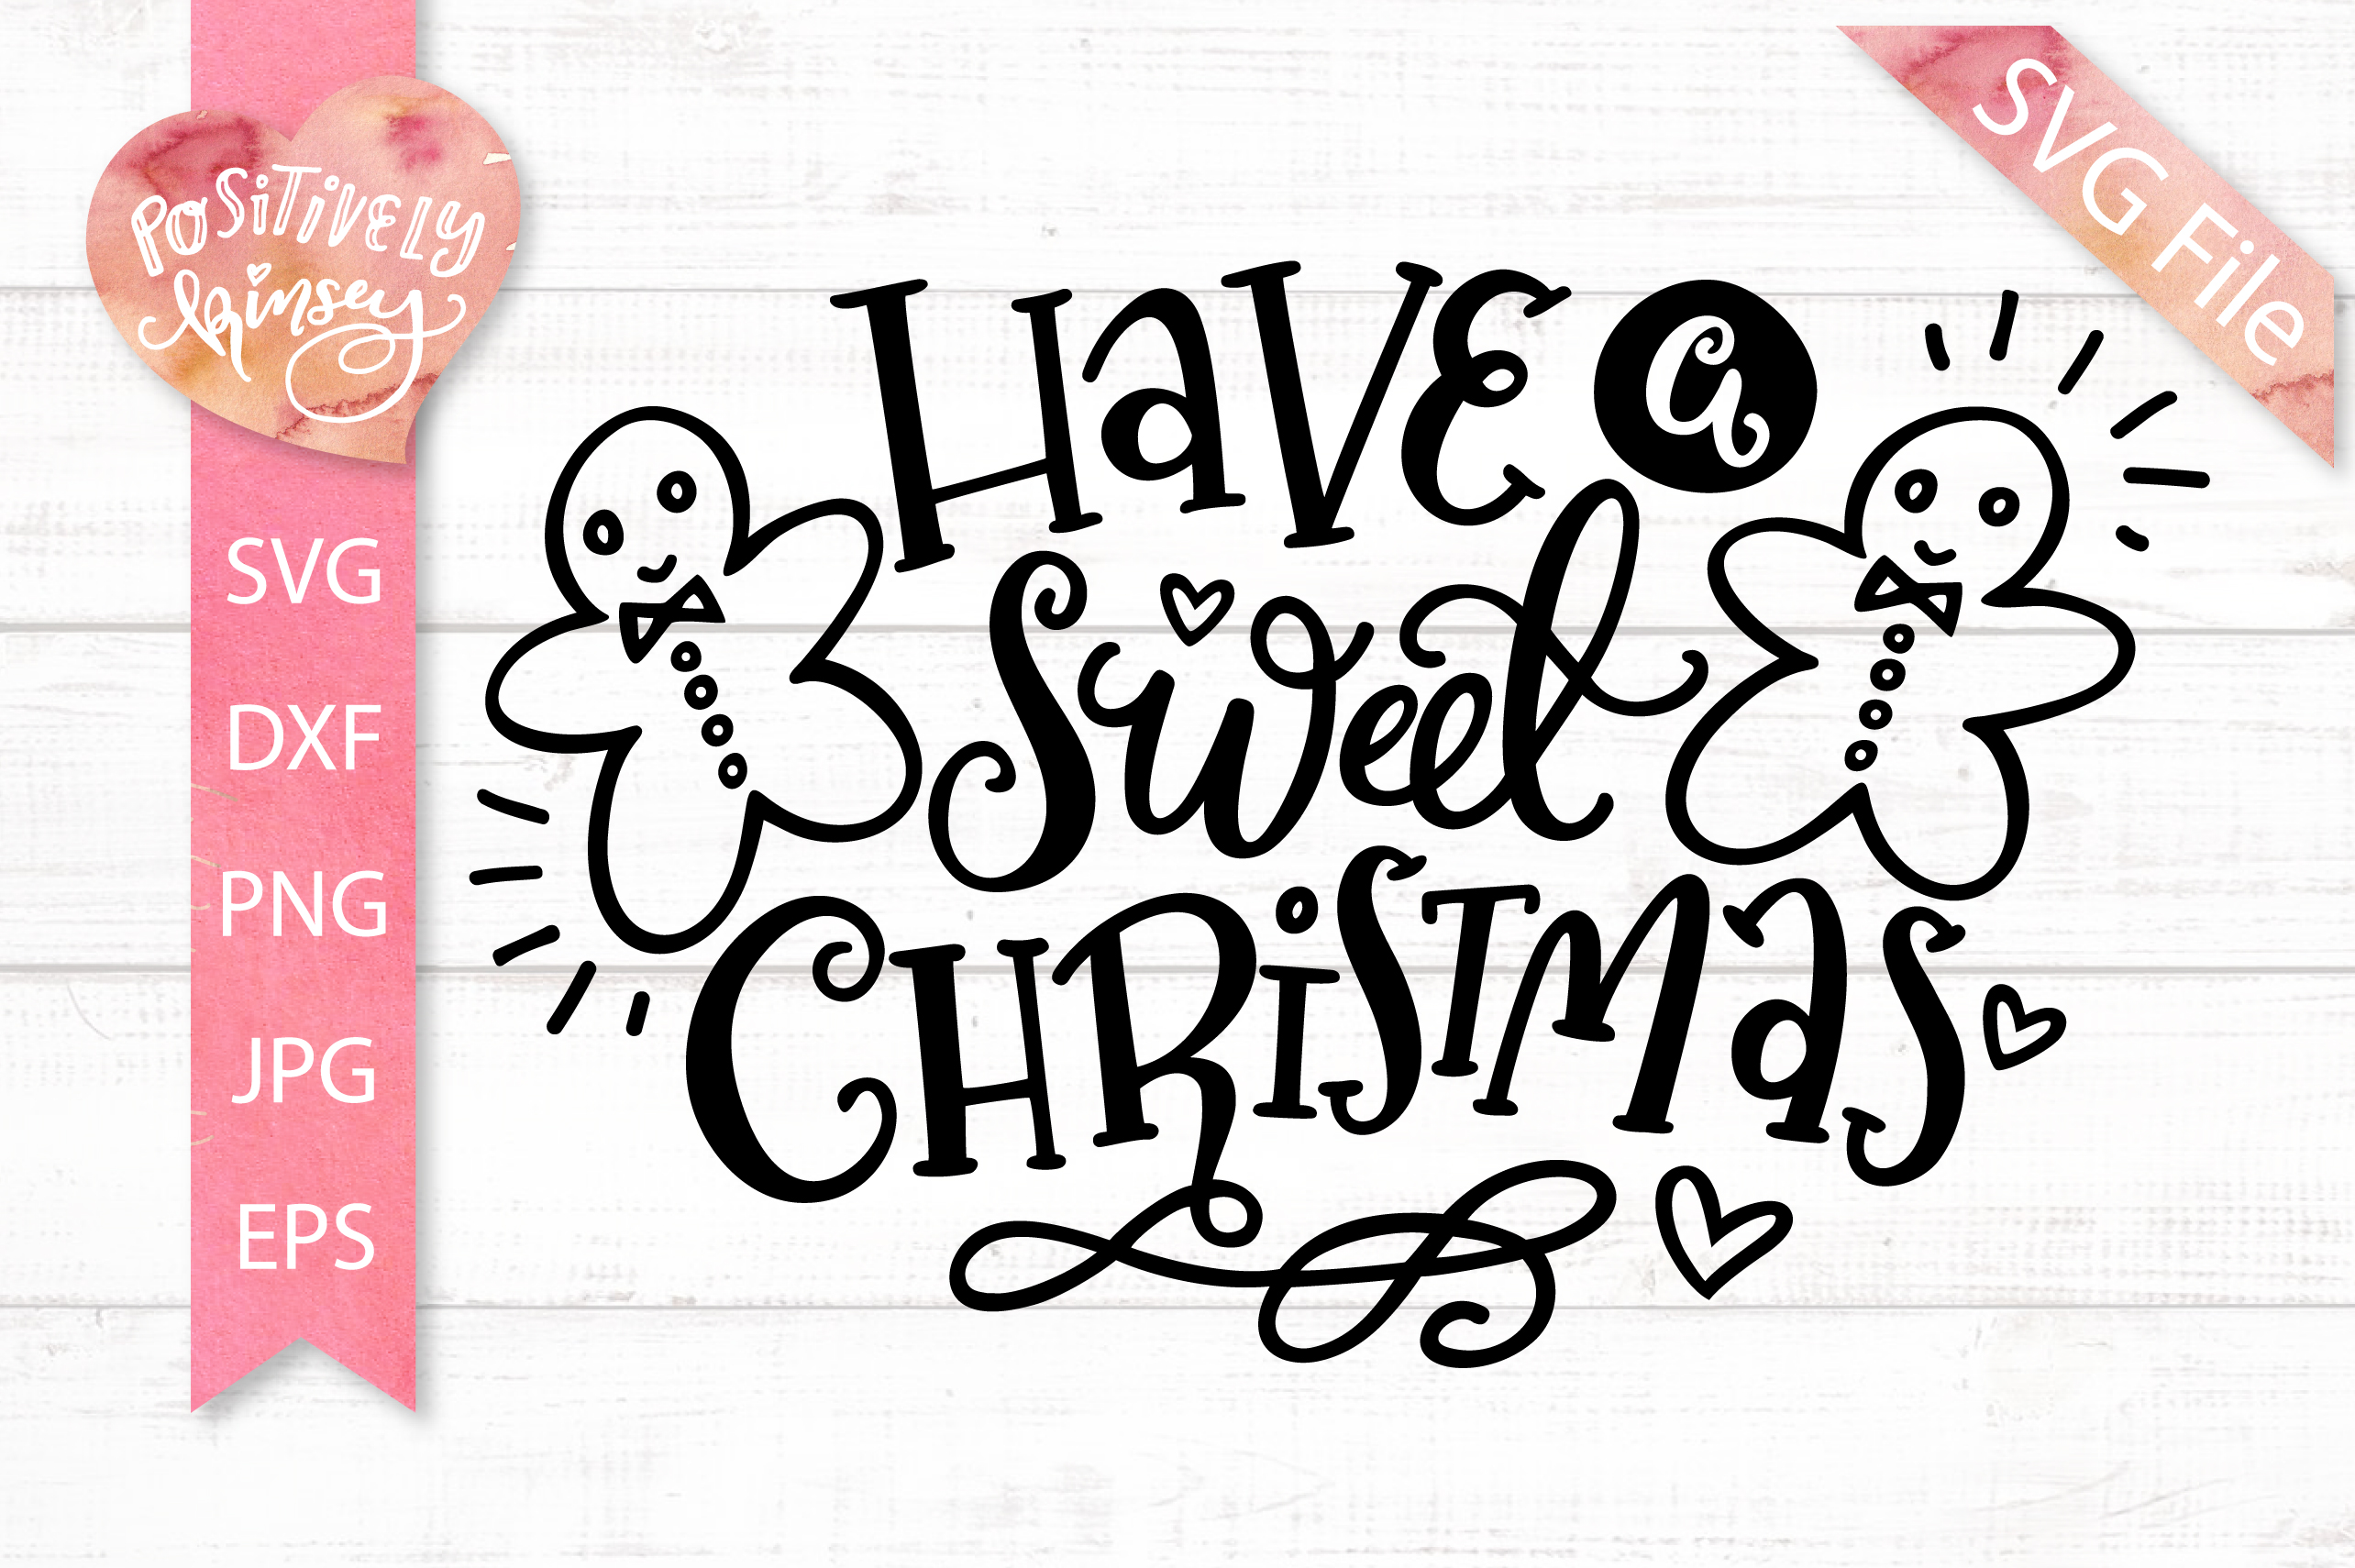 Christmas Baking SVG Bundle! 7 Cute Holiday Quote Designs example image 4